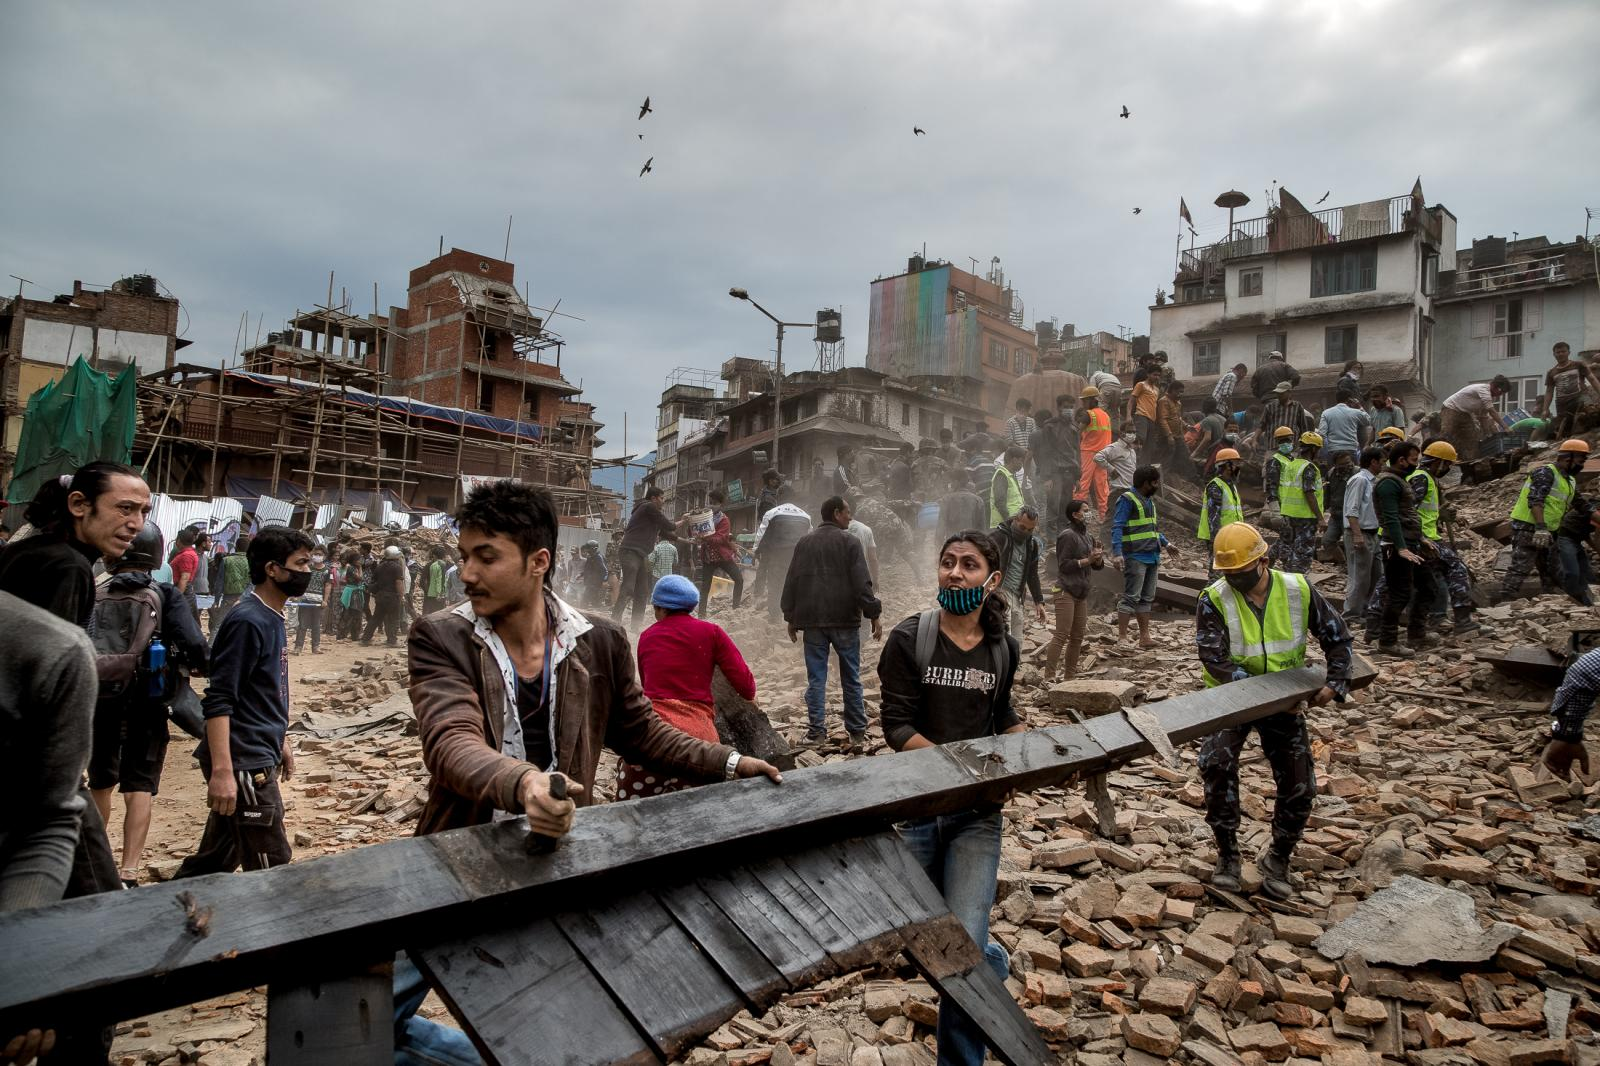 Photography image - Loading 003_Earthquake-Nepal.jpg